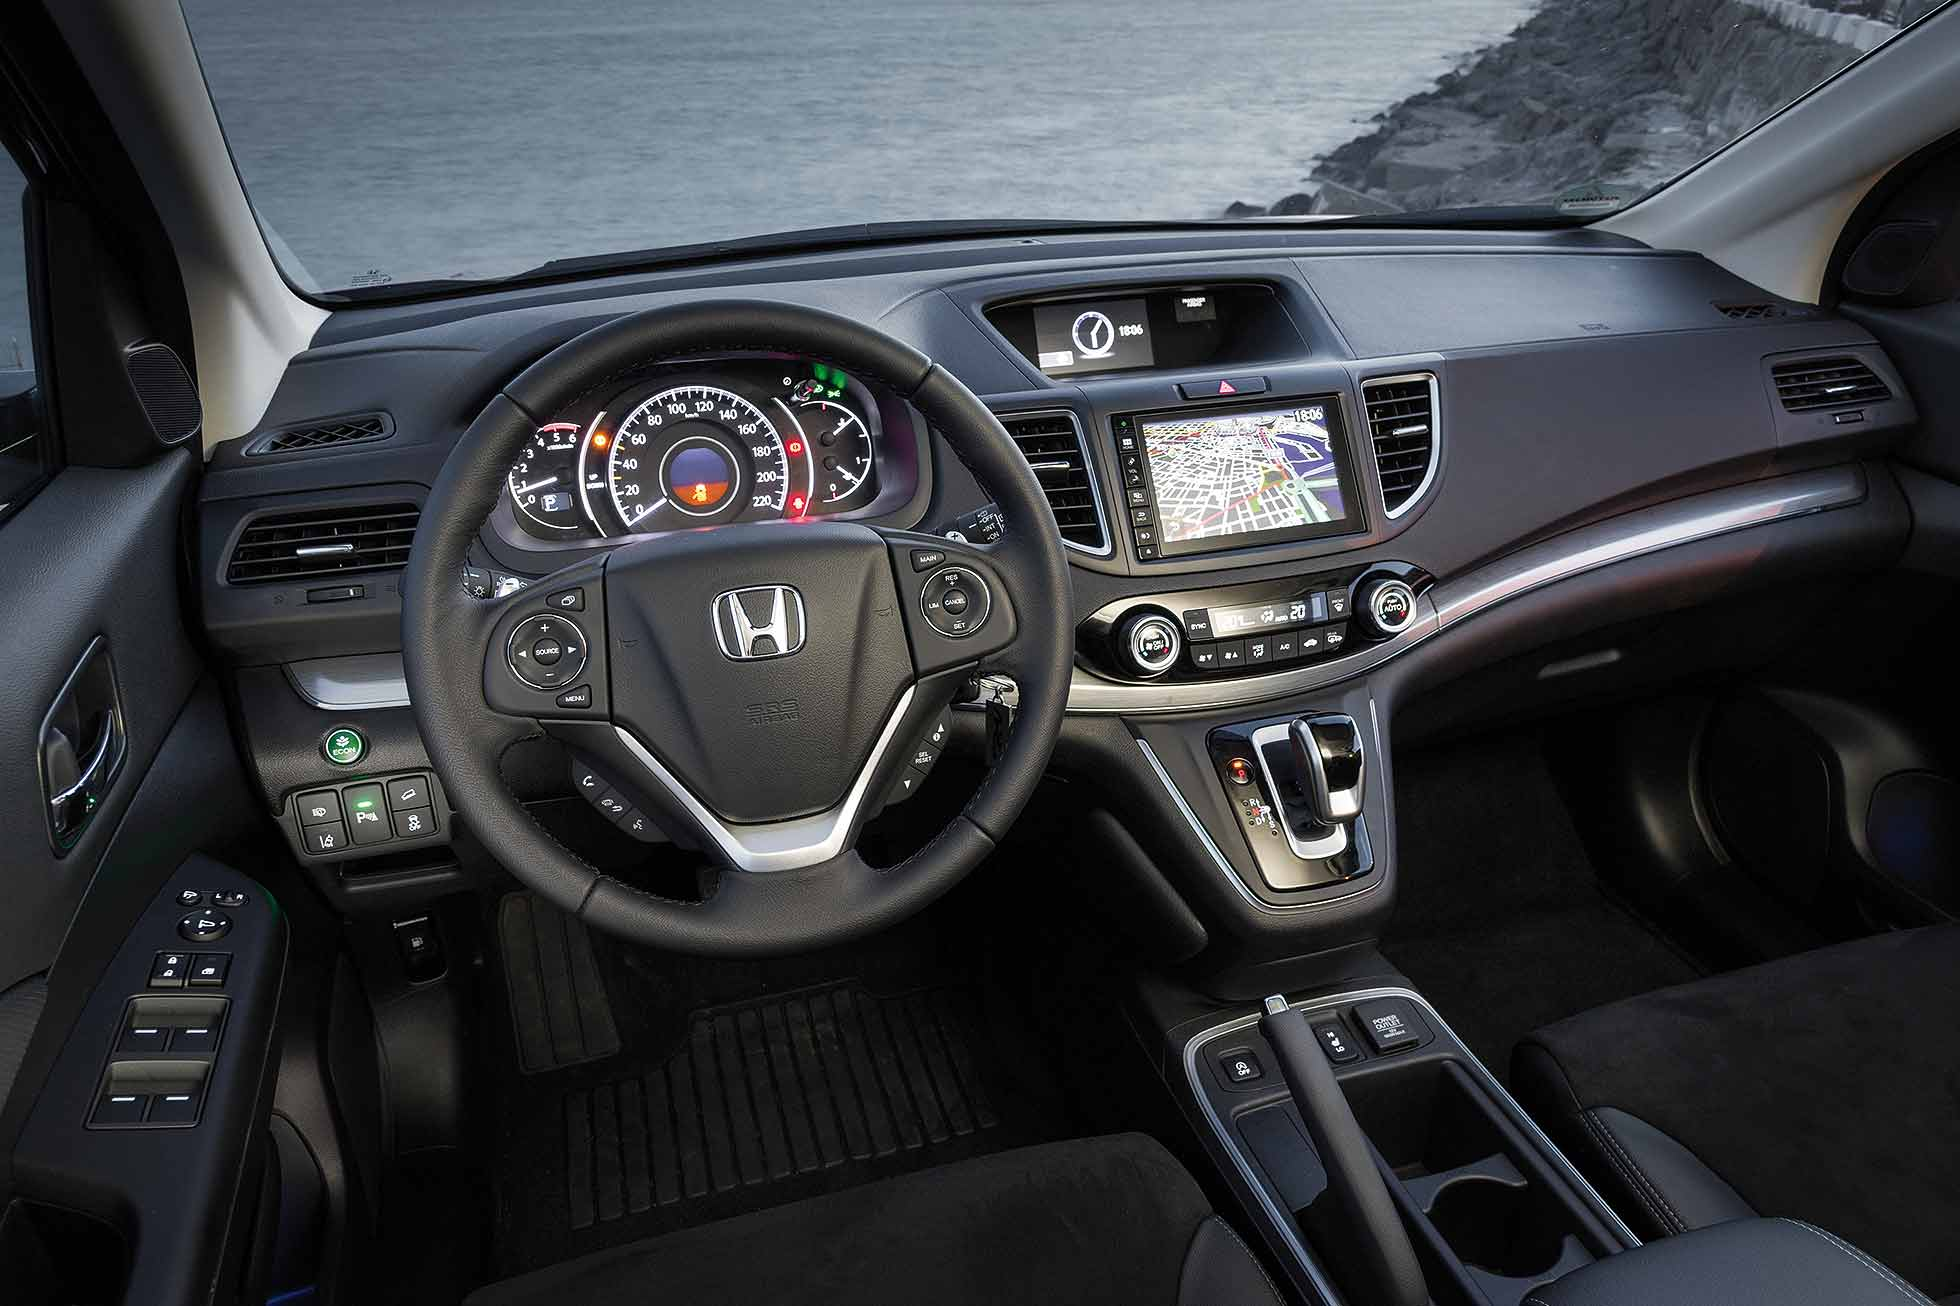 suv v review honda cr term days img crv driving with road long reviews the test